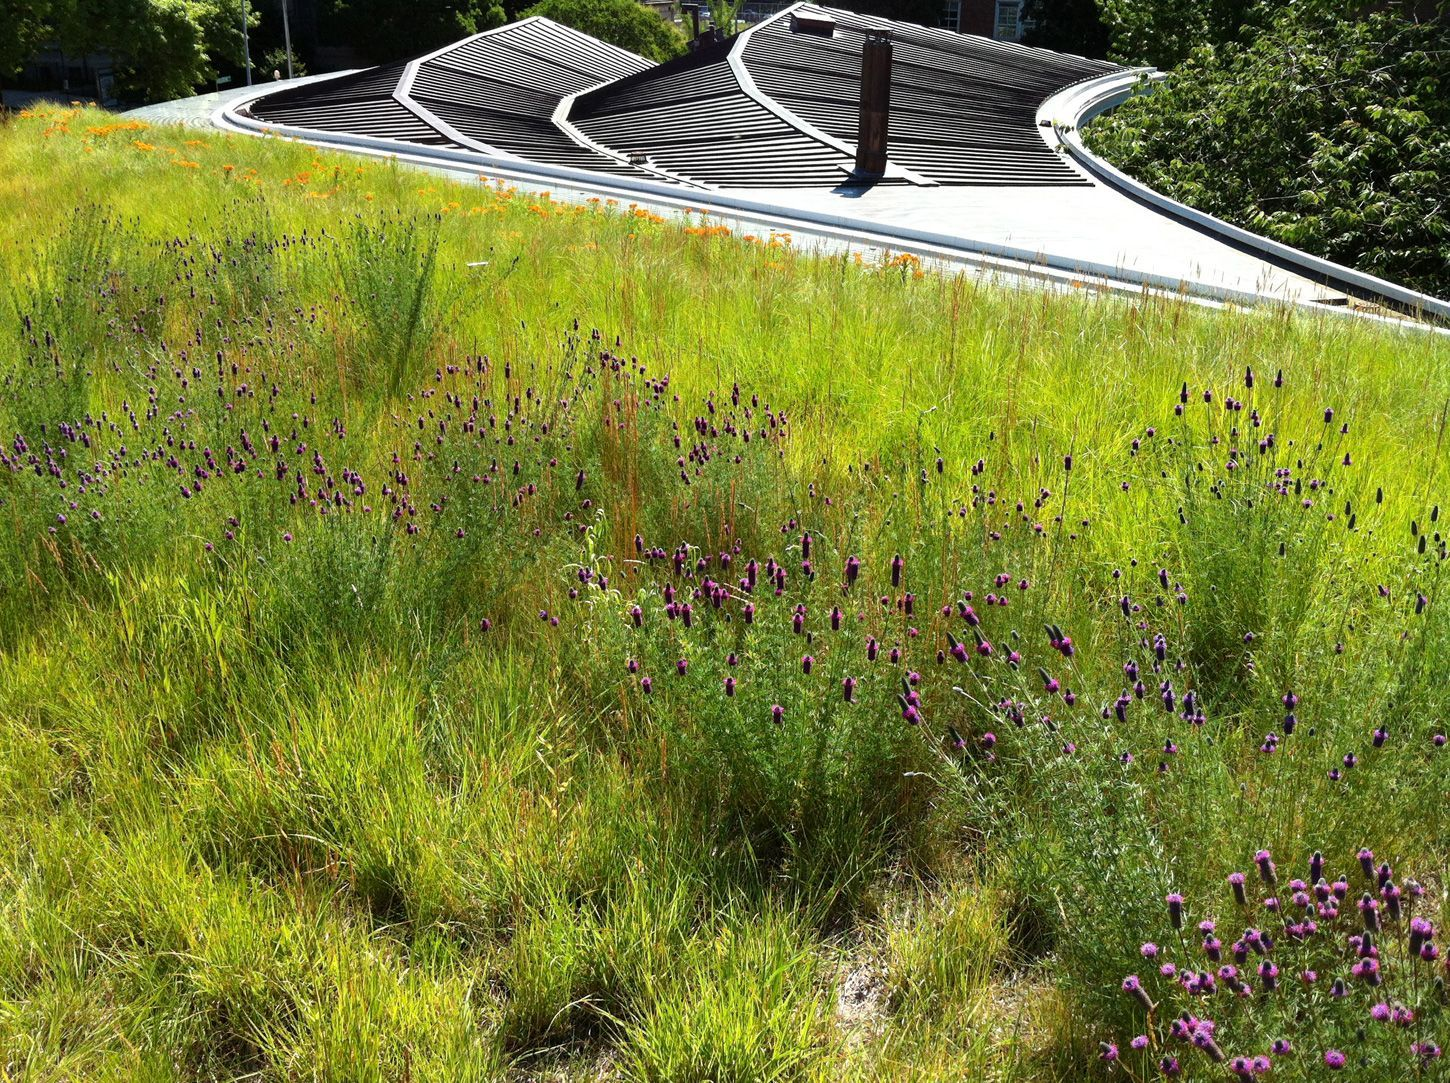 Image Result For Butterfly Garden Green Roof. Photo WallpaperRooftopGreen  RoofsBrooklynButterflyNyc